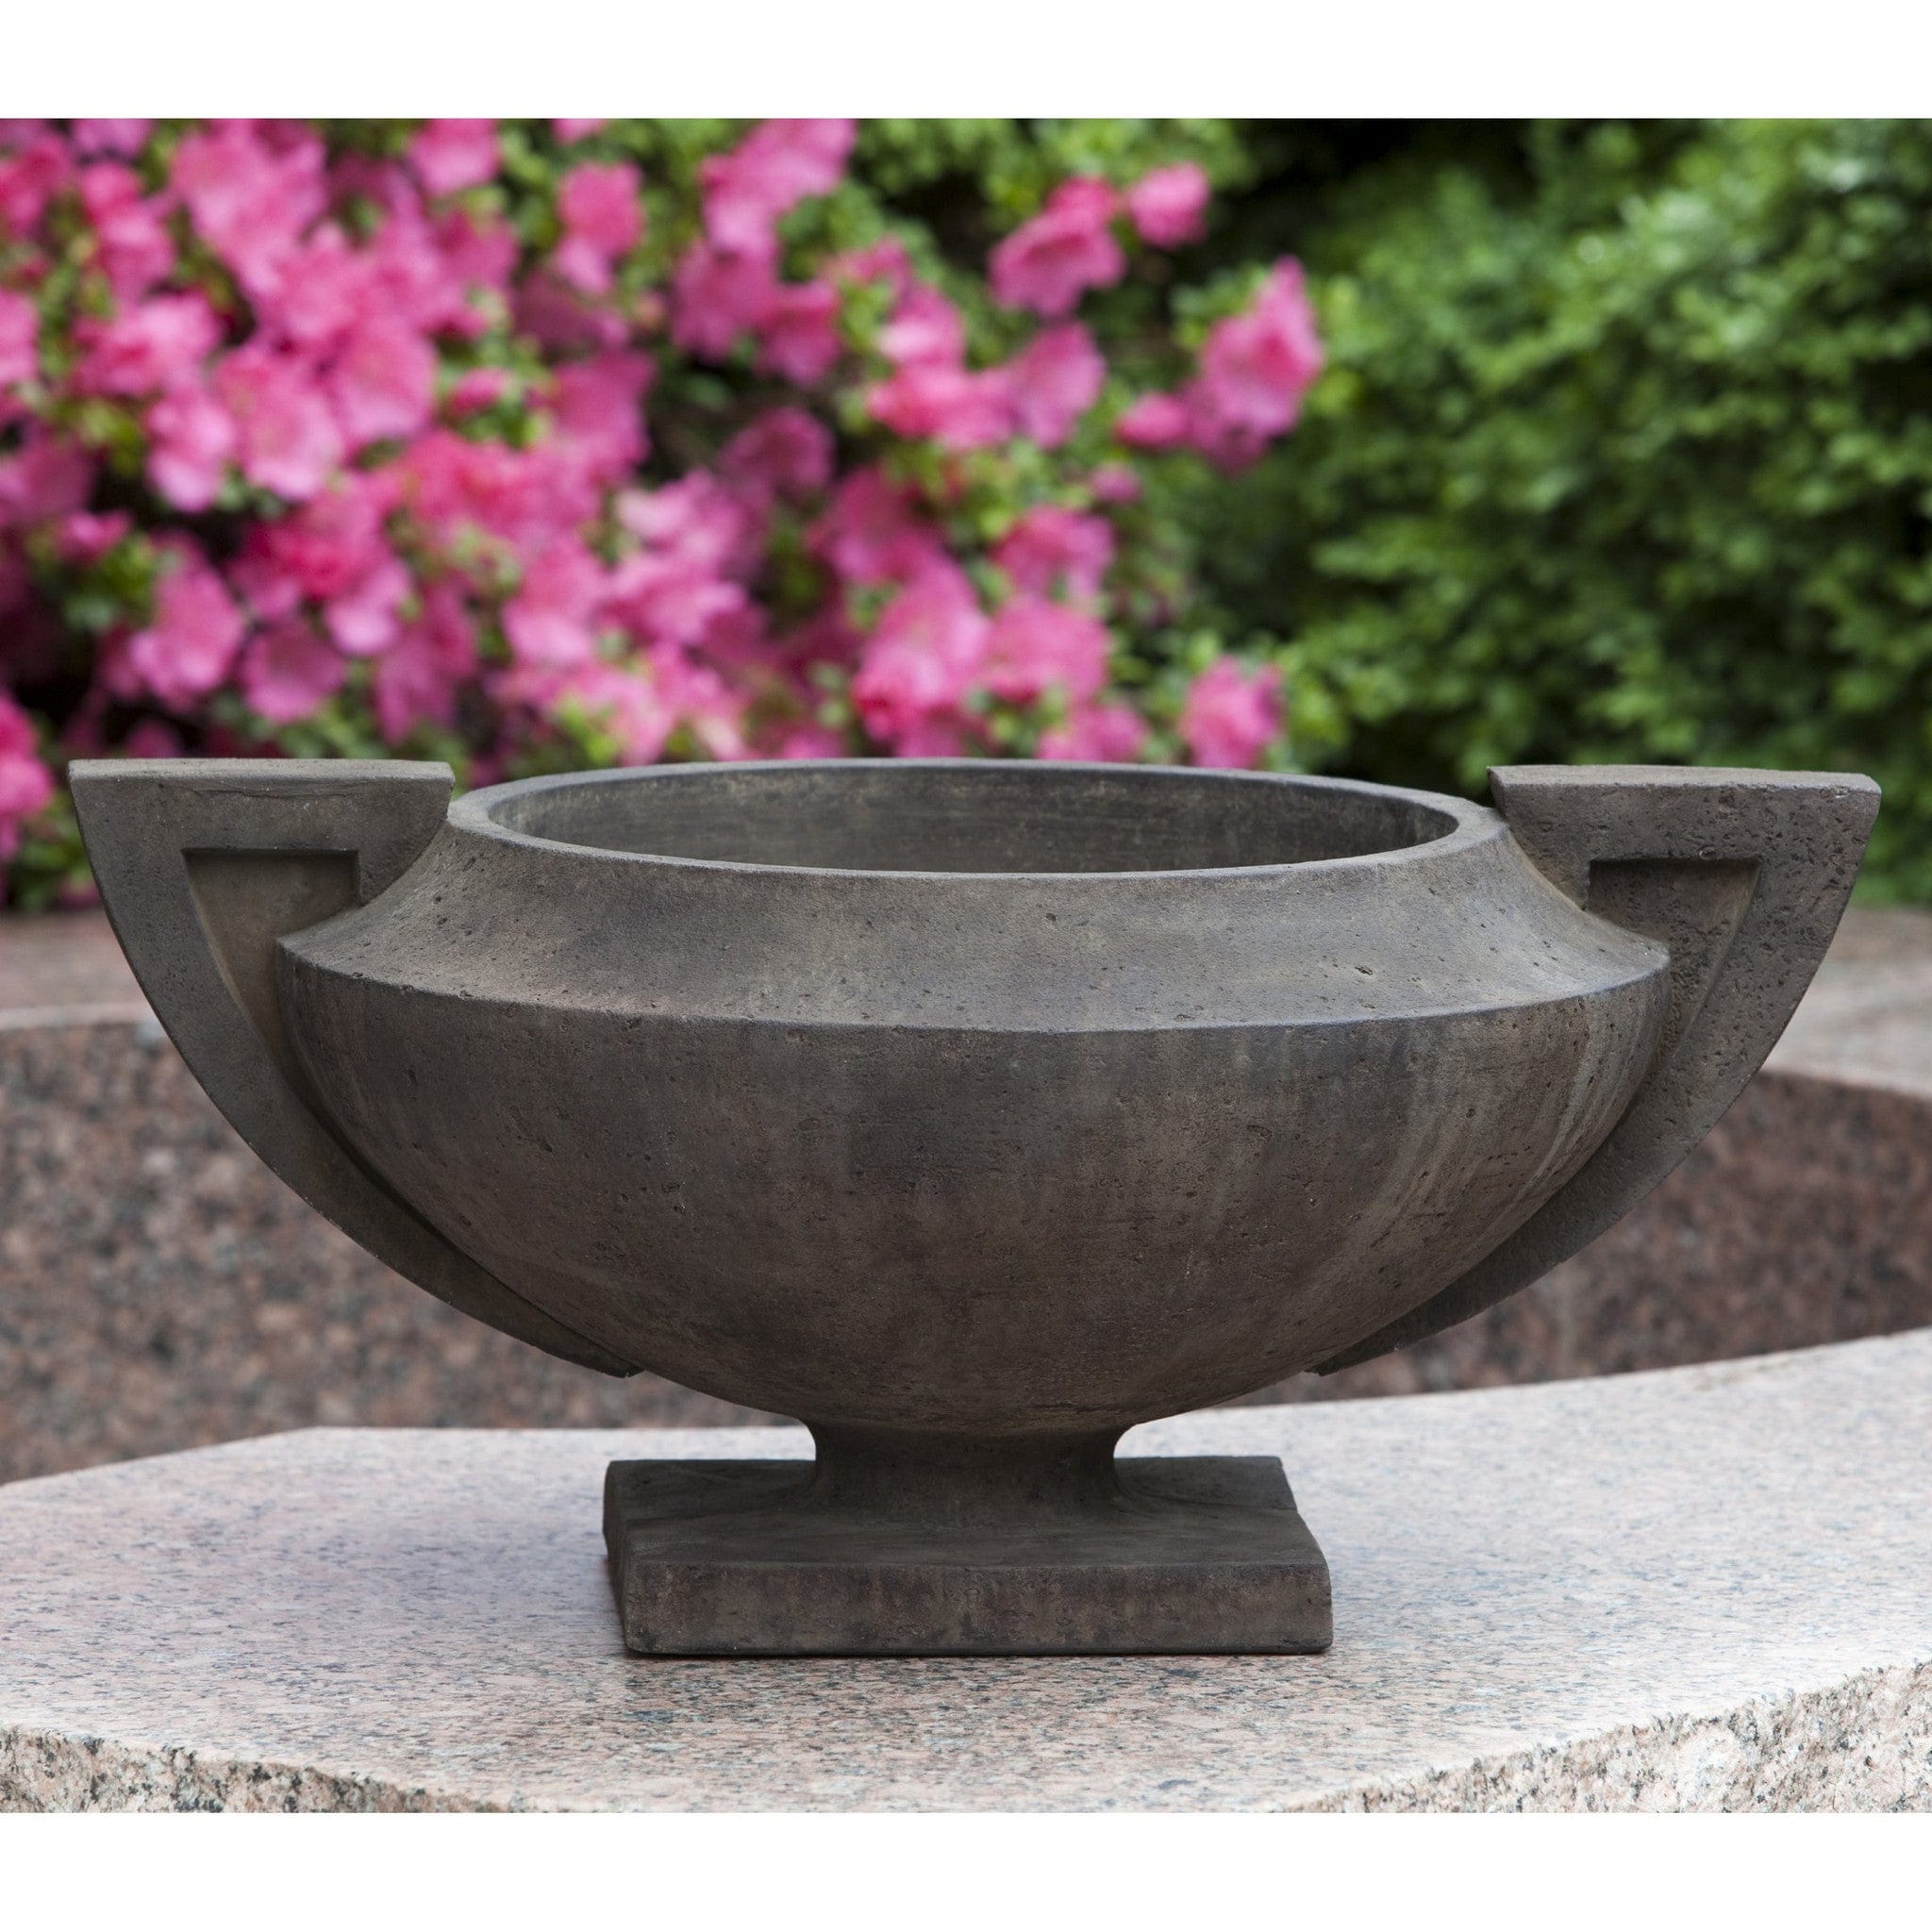 urn by clay garden zeus shipping overstock product antique planter today inch urns christopher knight home free